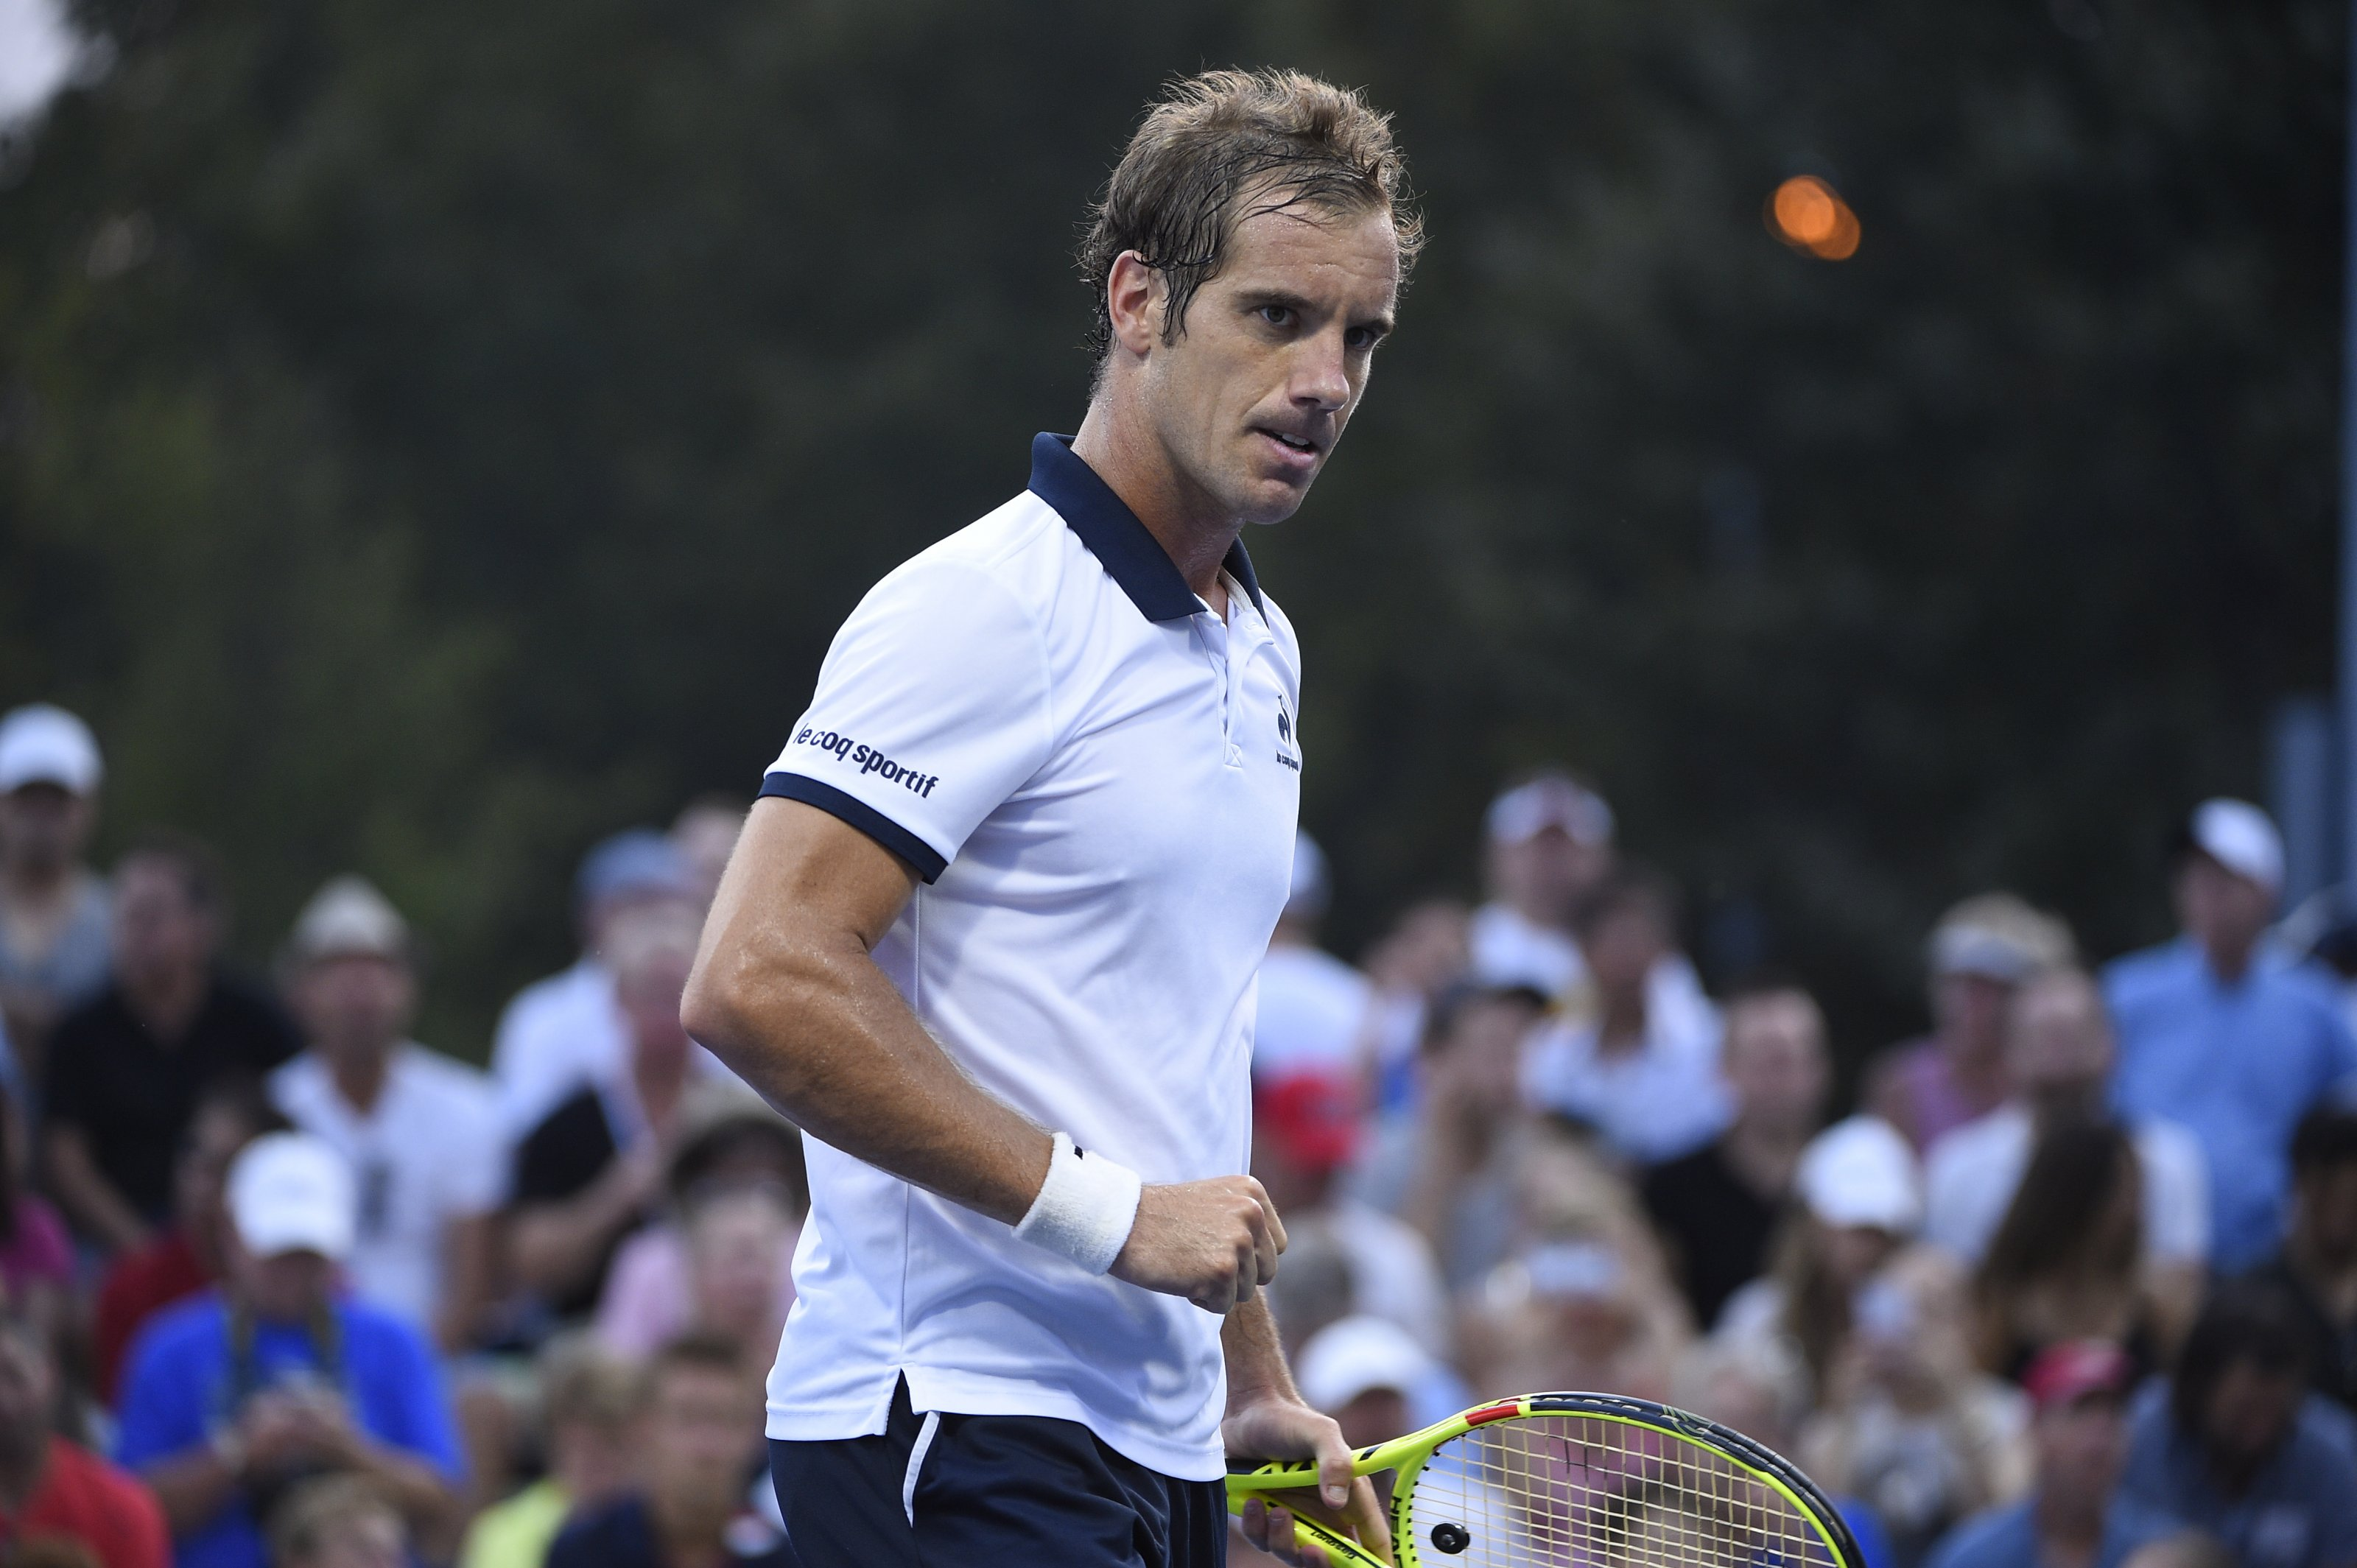 Richard Gasquet of France plays his second round match at the US Open at the USTA Billie Jean King National Tennis Center in the Flushing neighborhood of the Queens borough of New York City, NY, USA on September 3, 2015. Photo by Corinne Dubreuil/ABACAPRESS.COM